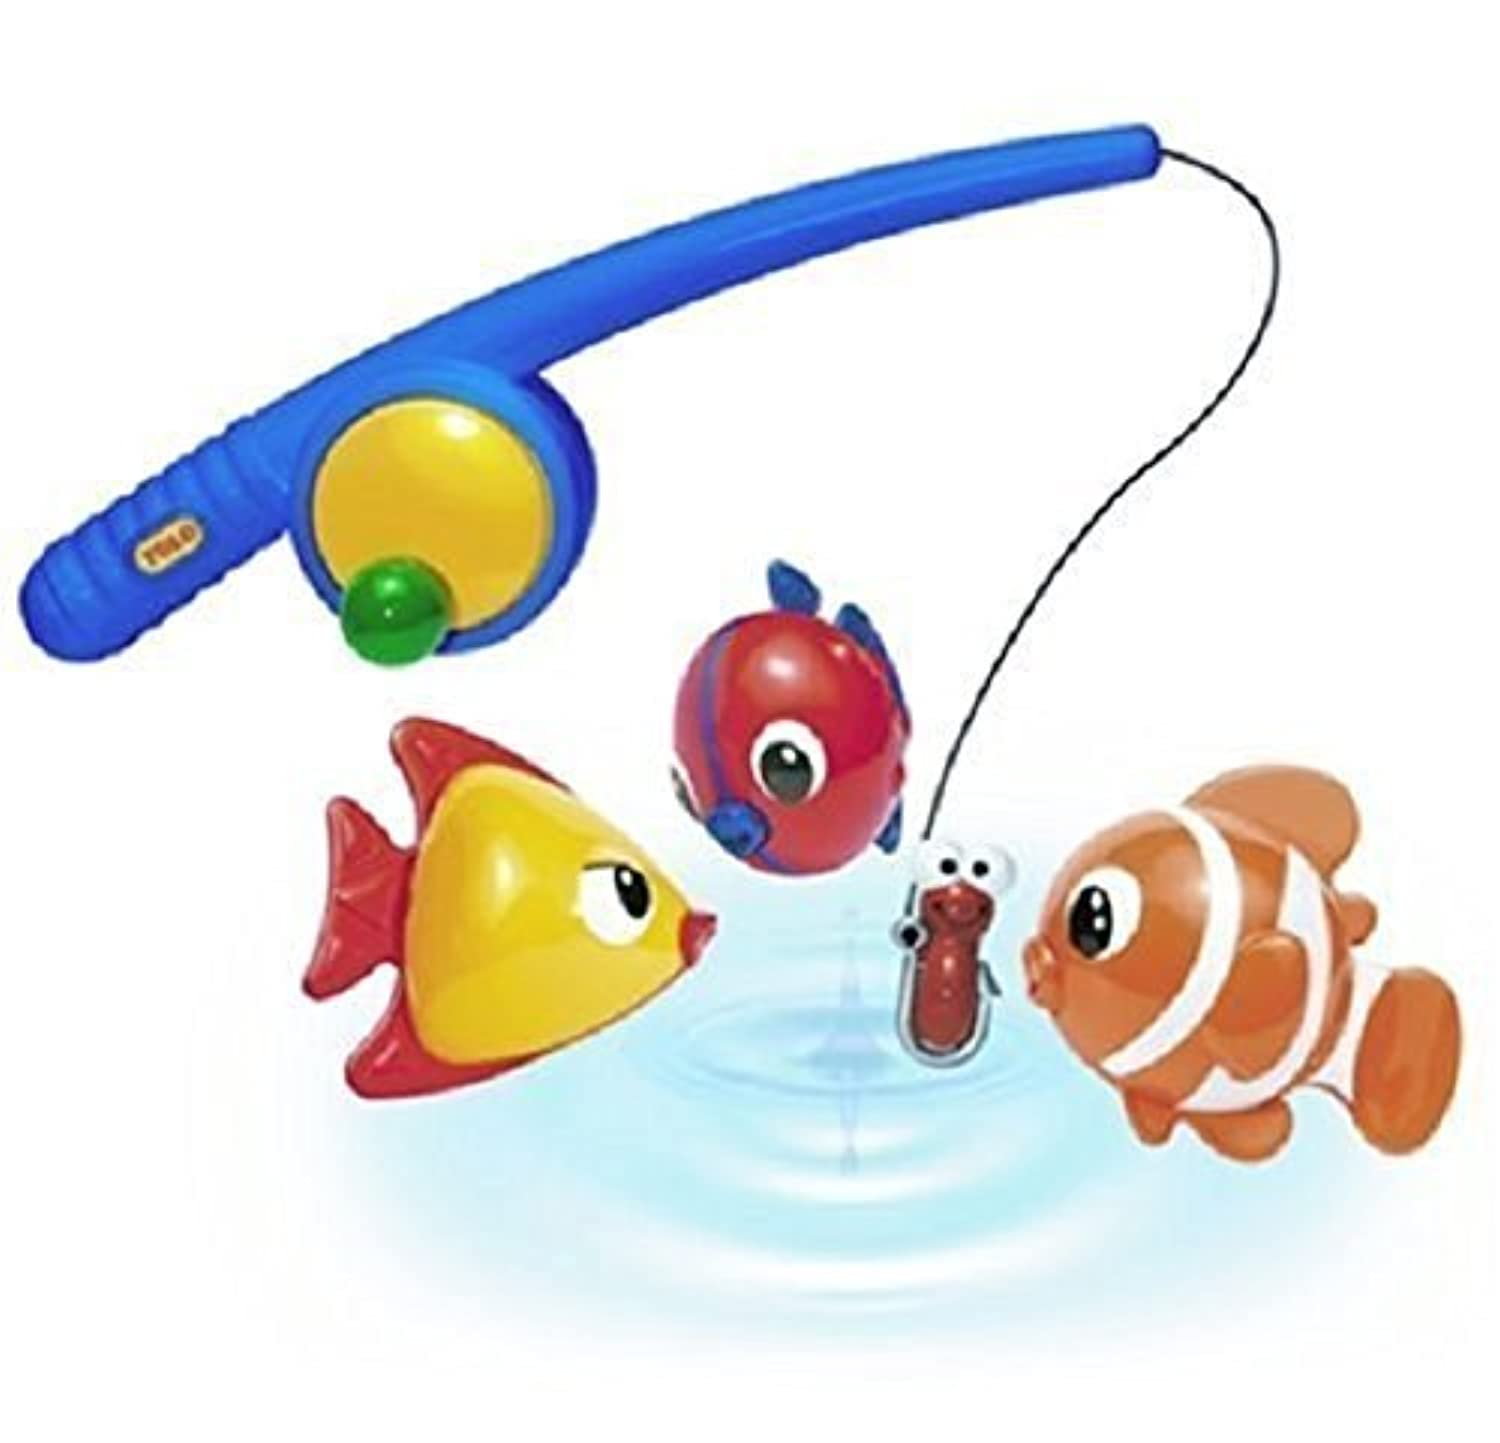 Made Of High Quality Plastic In Vibrant Colors - Tolo Toys Funtime Fishing by Hendelman & Co. [並行輸入品]